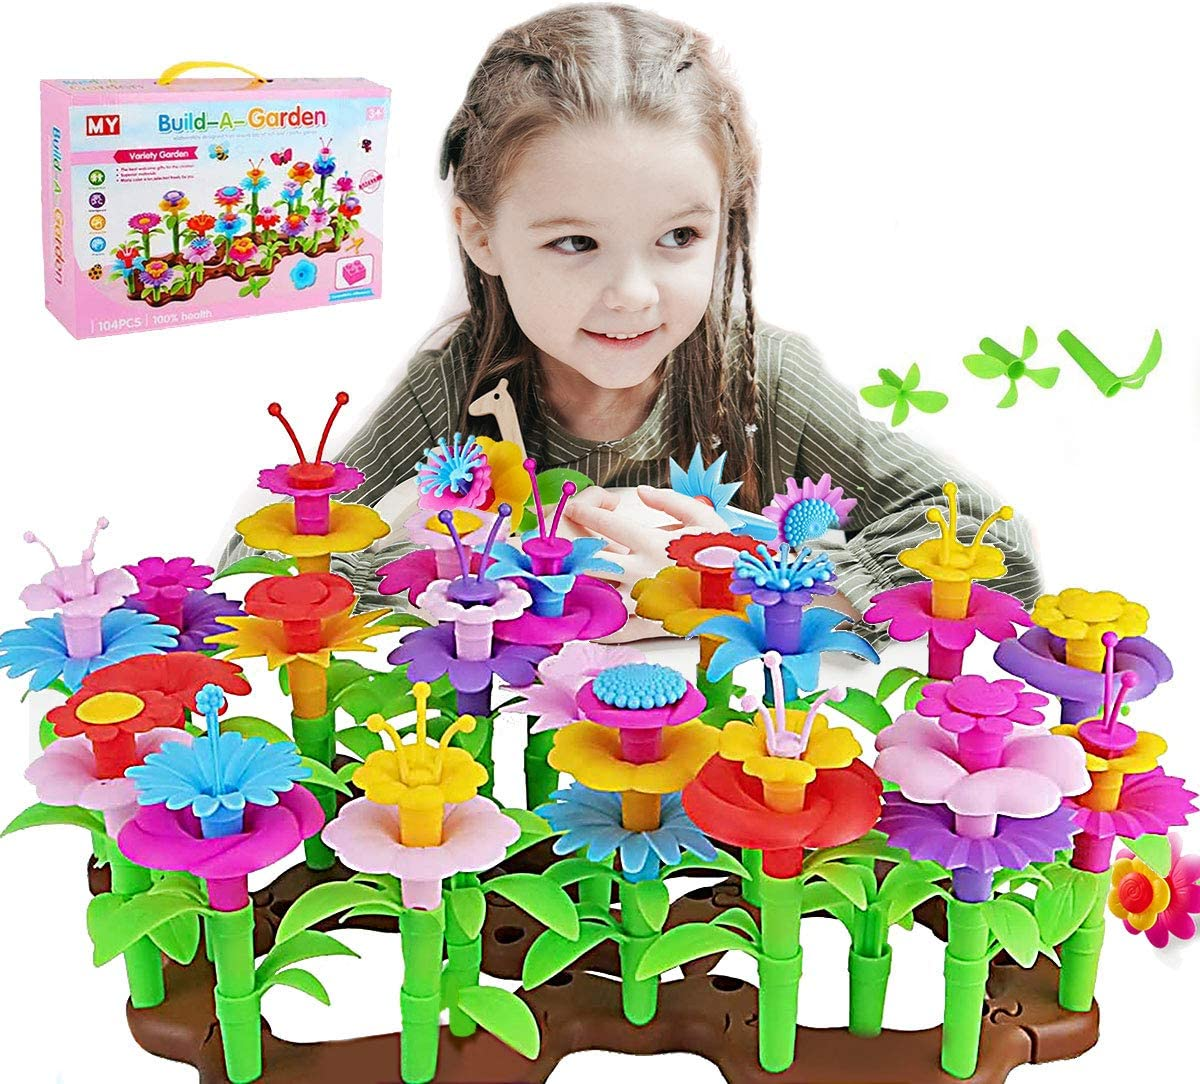 Flower Garden Building Toys, STEM Build a Bouquet Floral Arrangement Playset for Toddlers Kids Age 3, 4, 5, 6 Year Old, 104 PCS Garden Building Block Toys, Educational Creative Play Garden Stem Toys